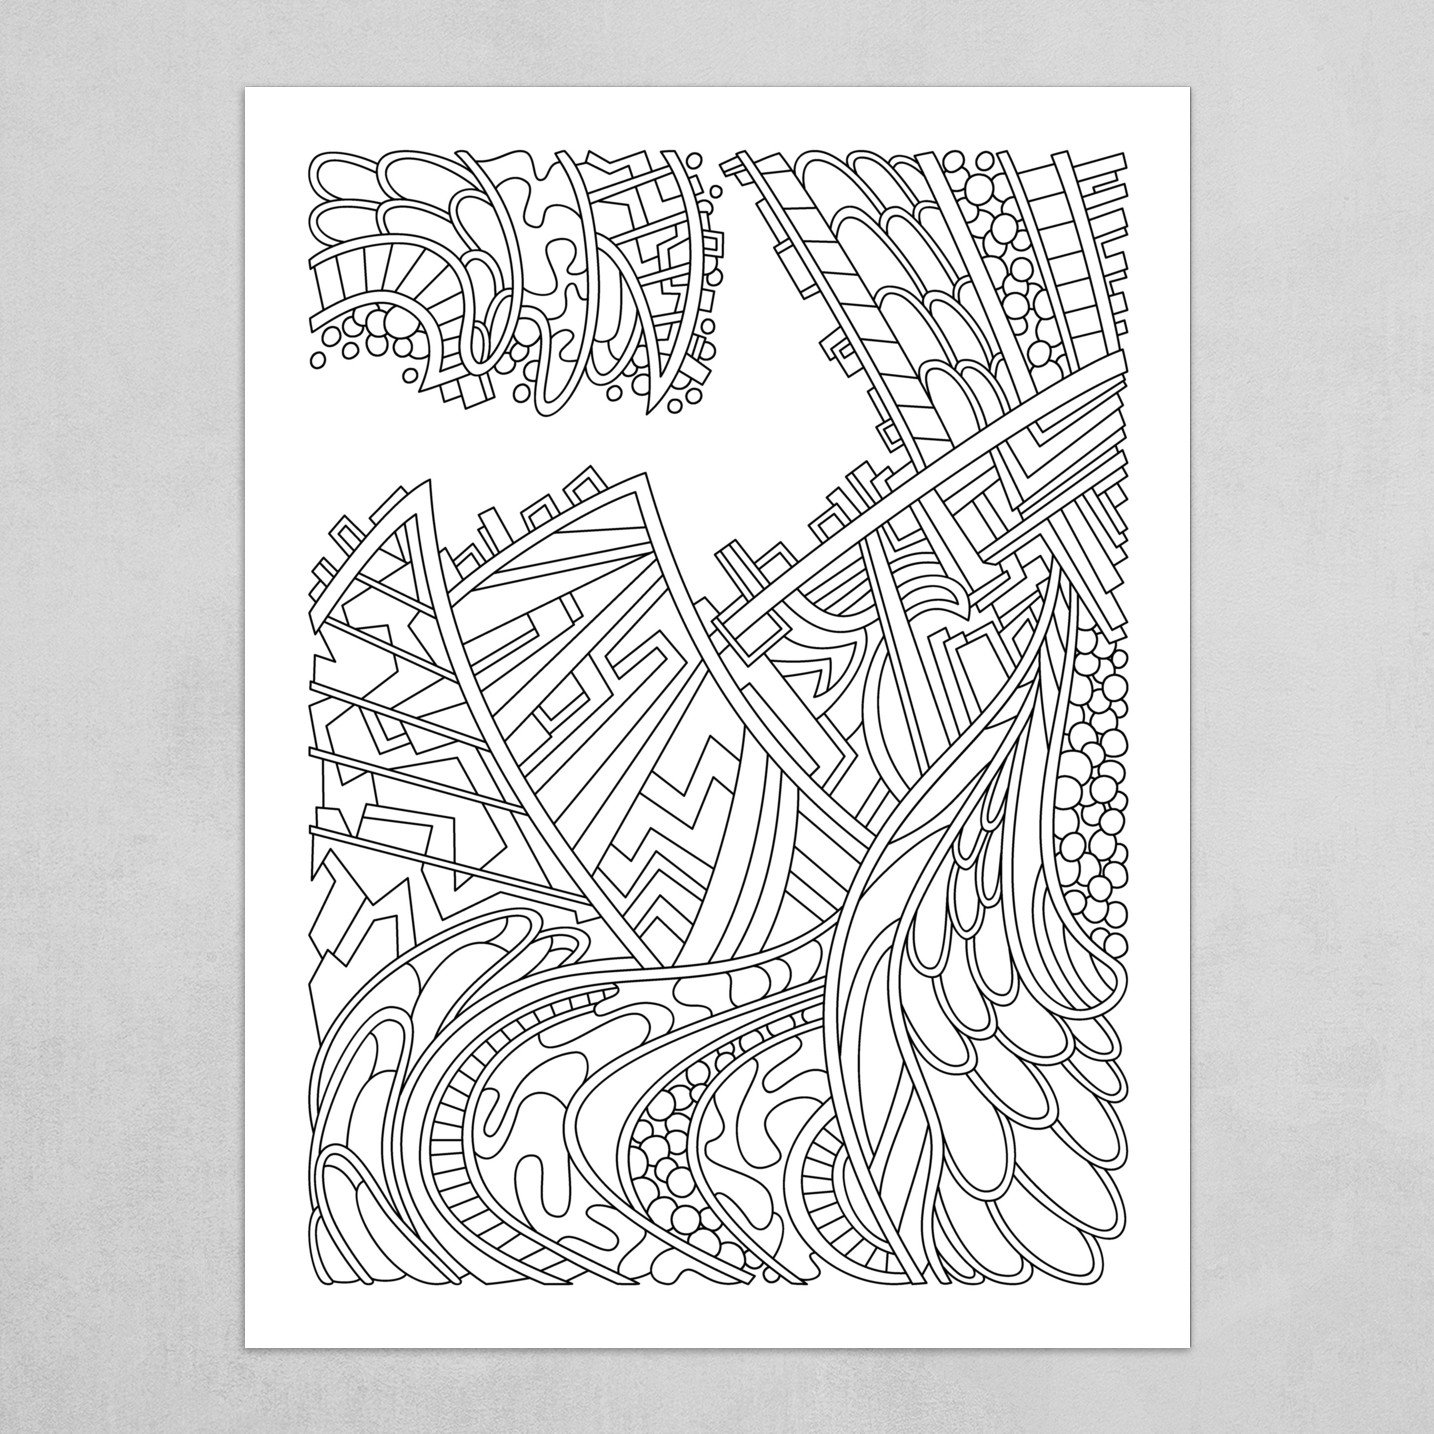 Wandering Abstract Line Art 01: Black & White